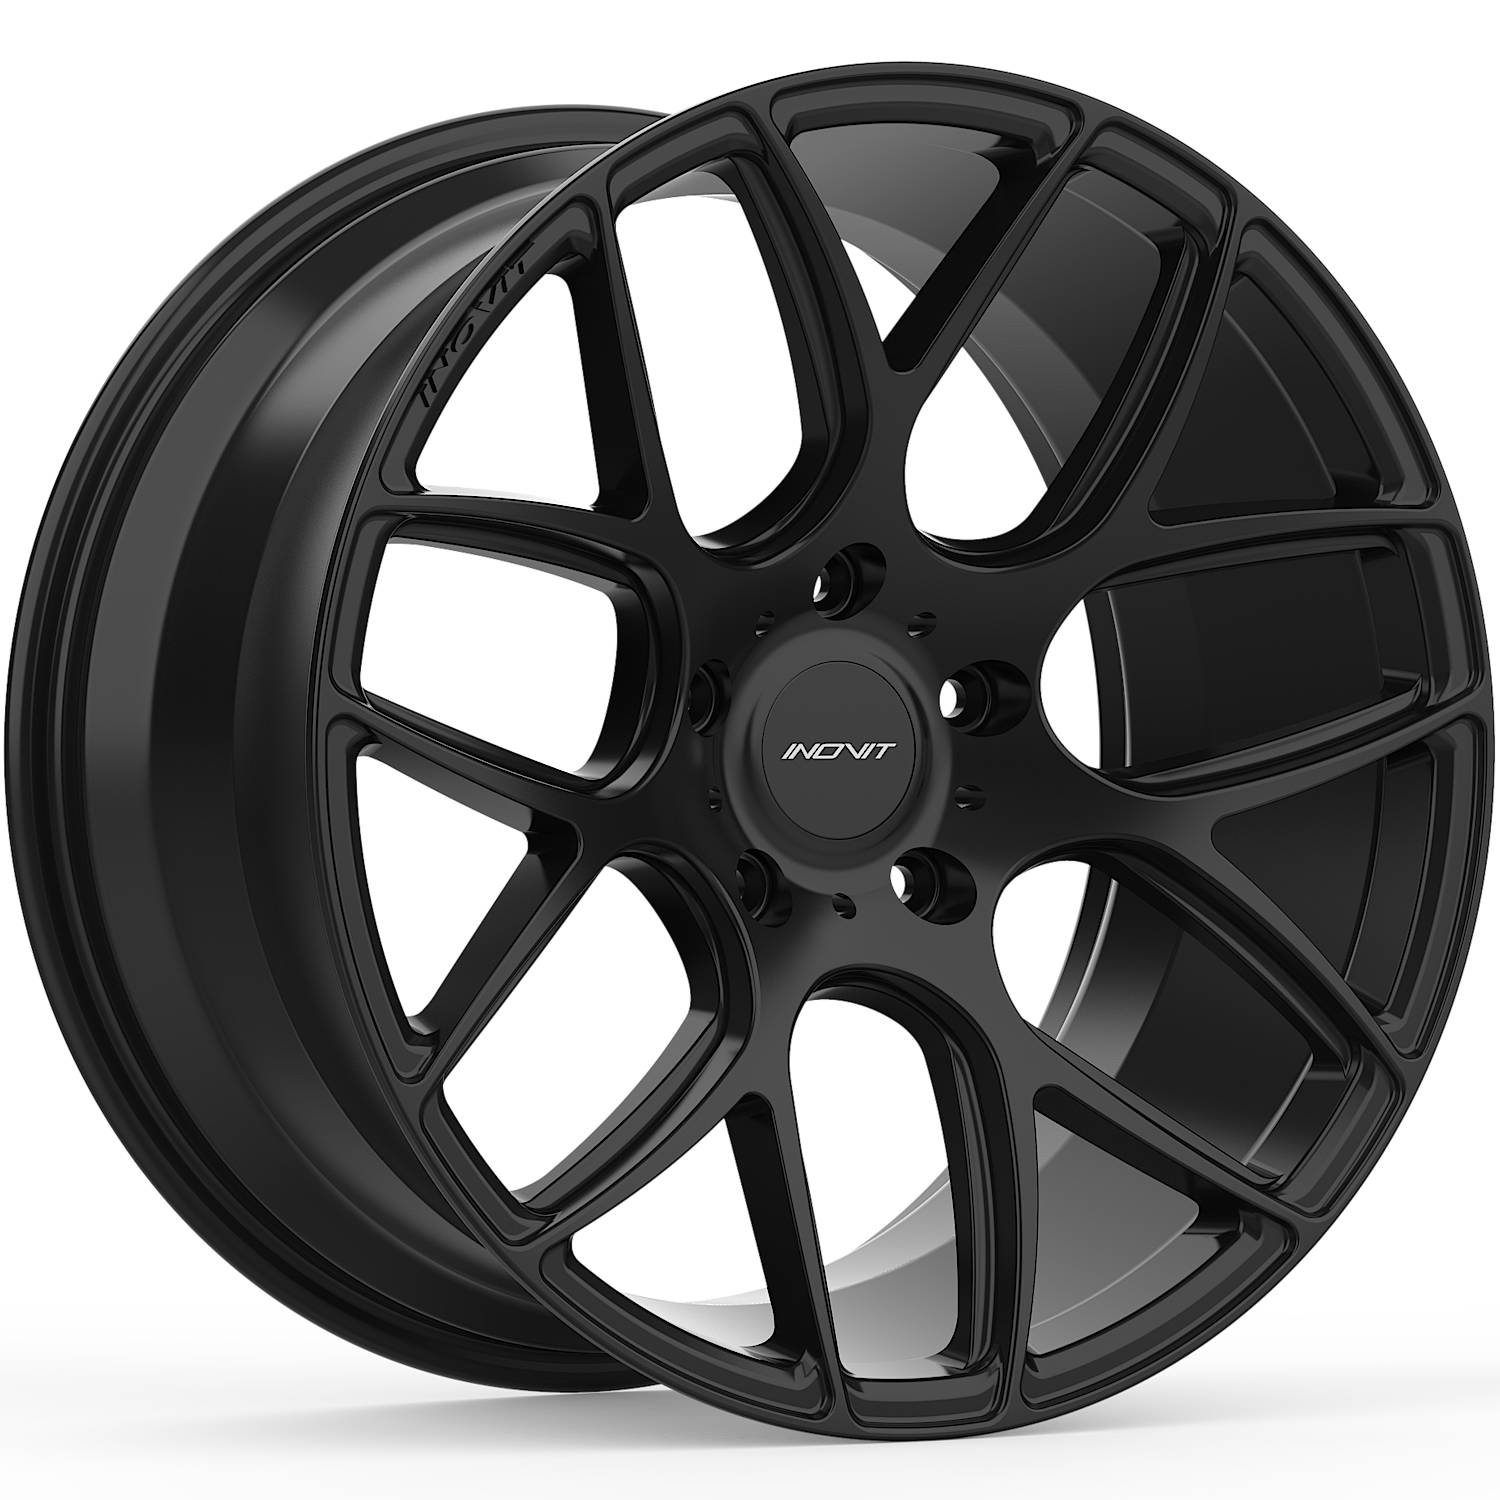 INOVIT Thrust Satin Black20x8.5 +30mm